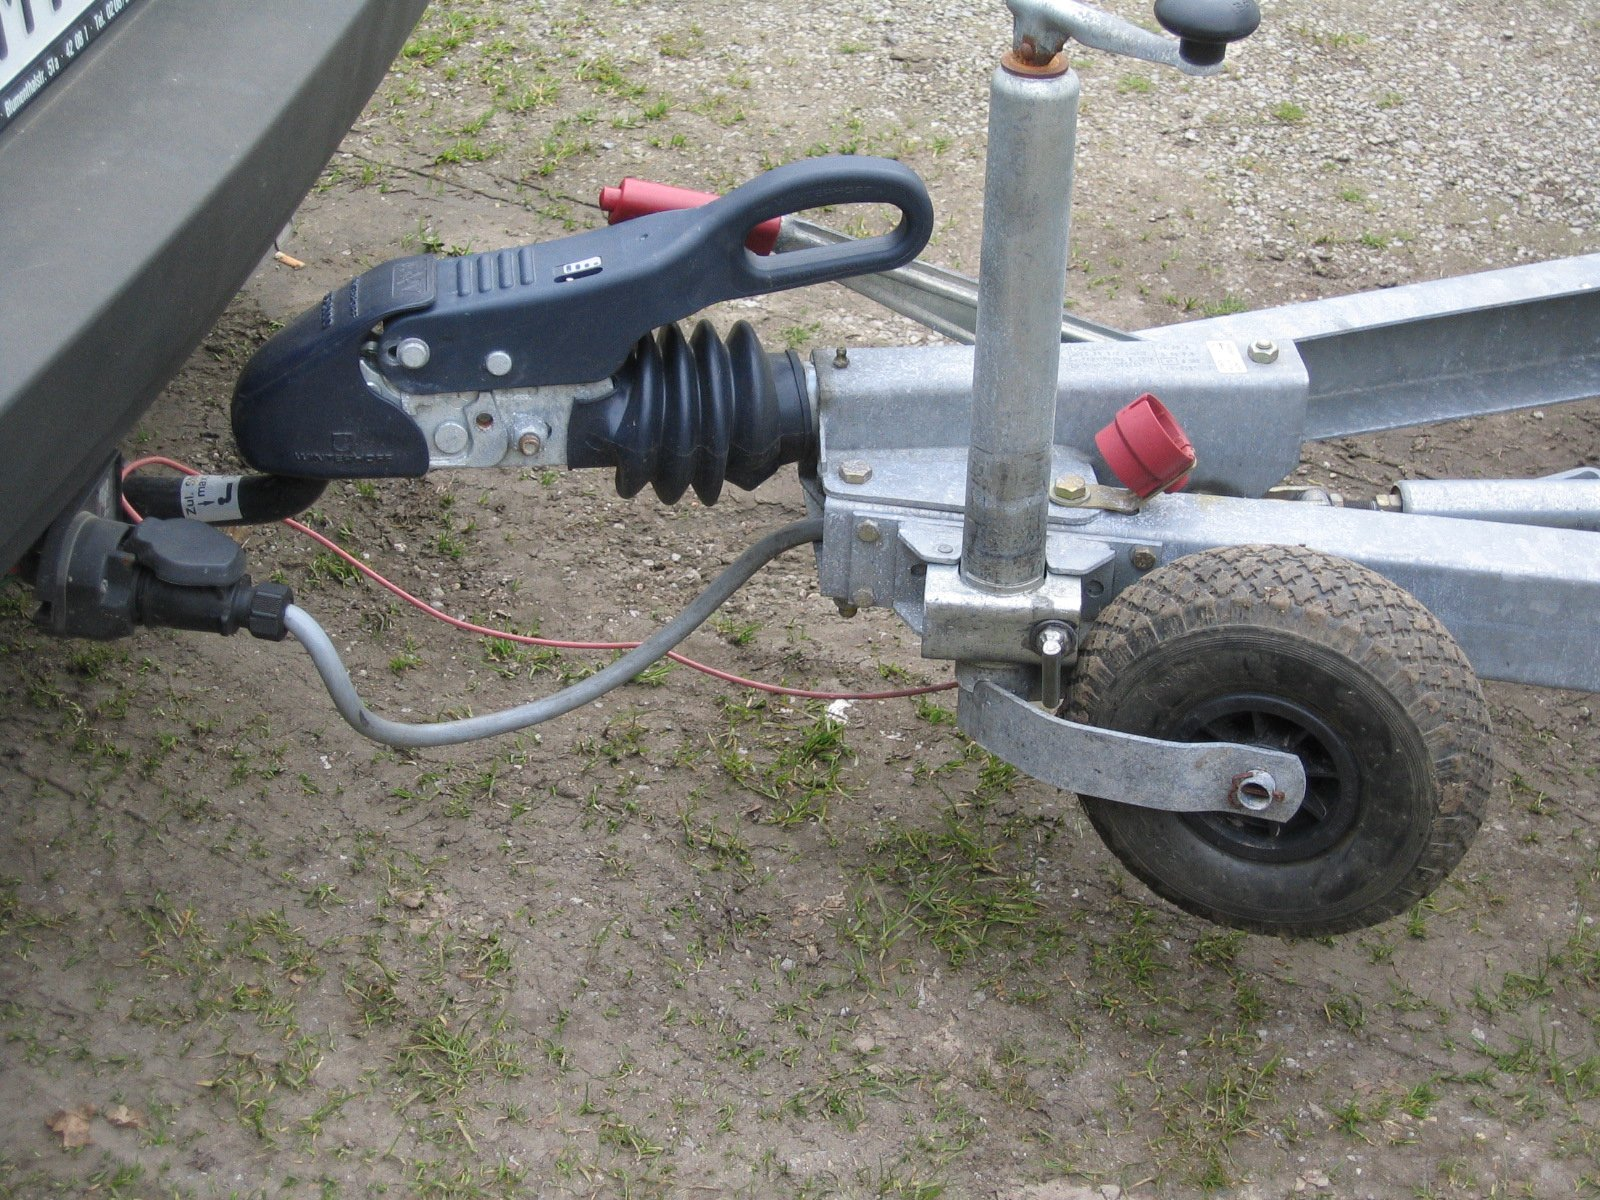 Boat towing tool